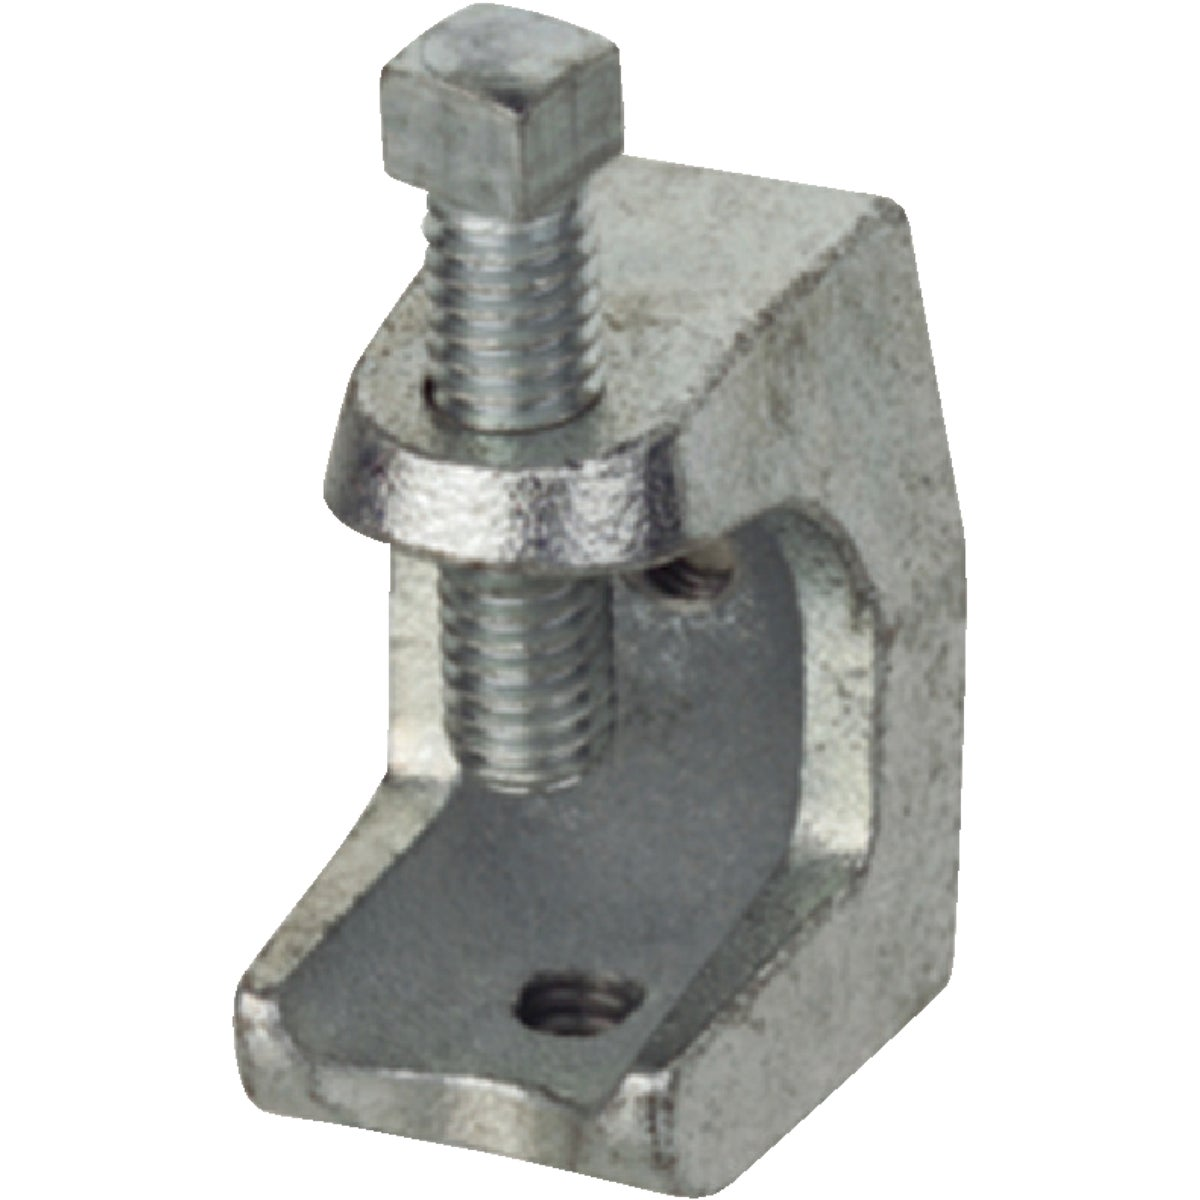 "3/8"" TOP BEAM CLAMP - Z502-10 by Thomas & Betts"